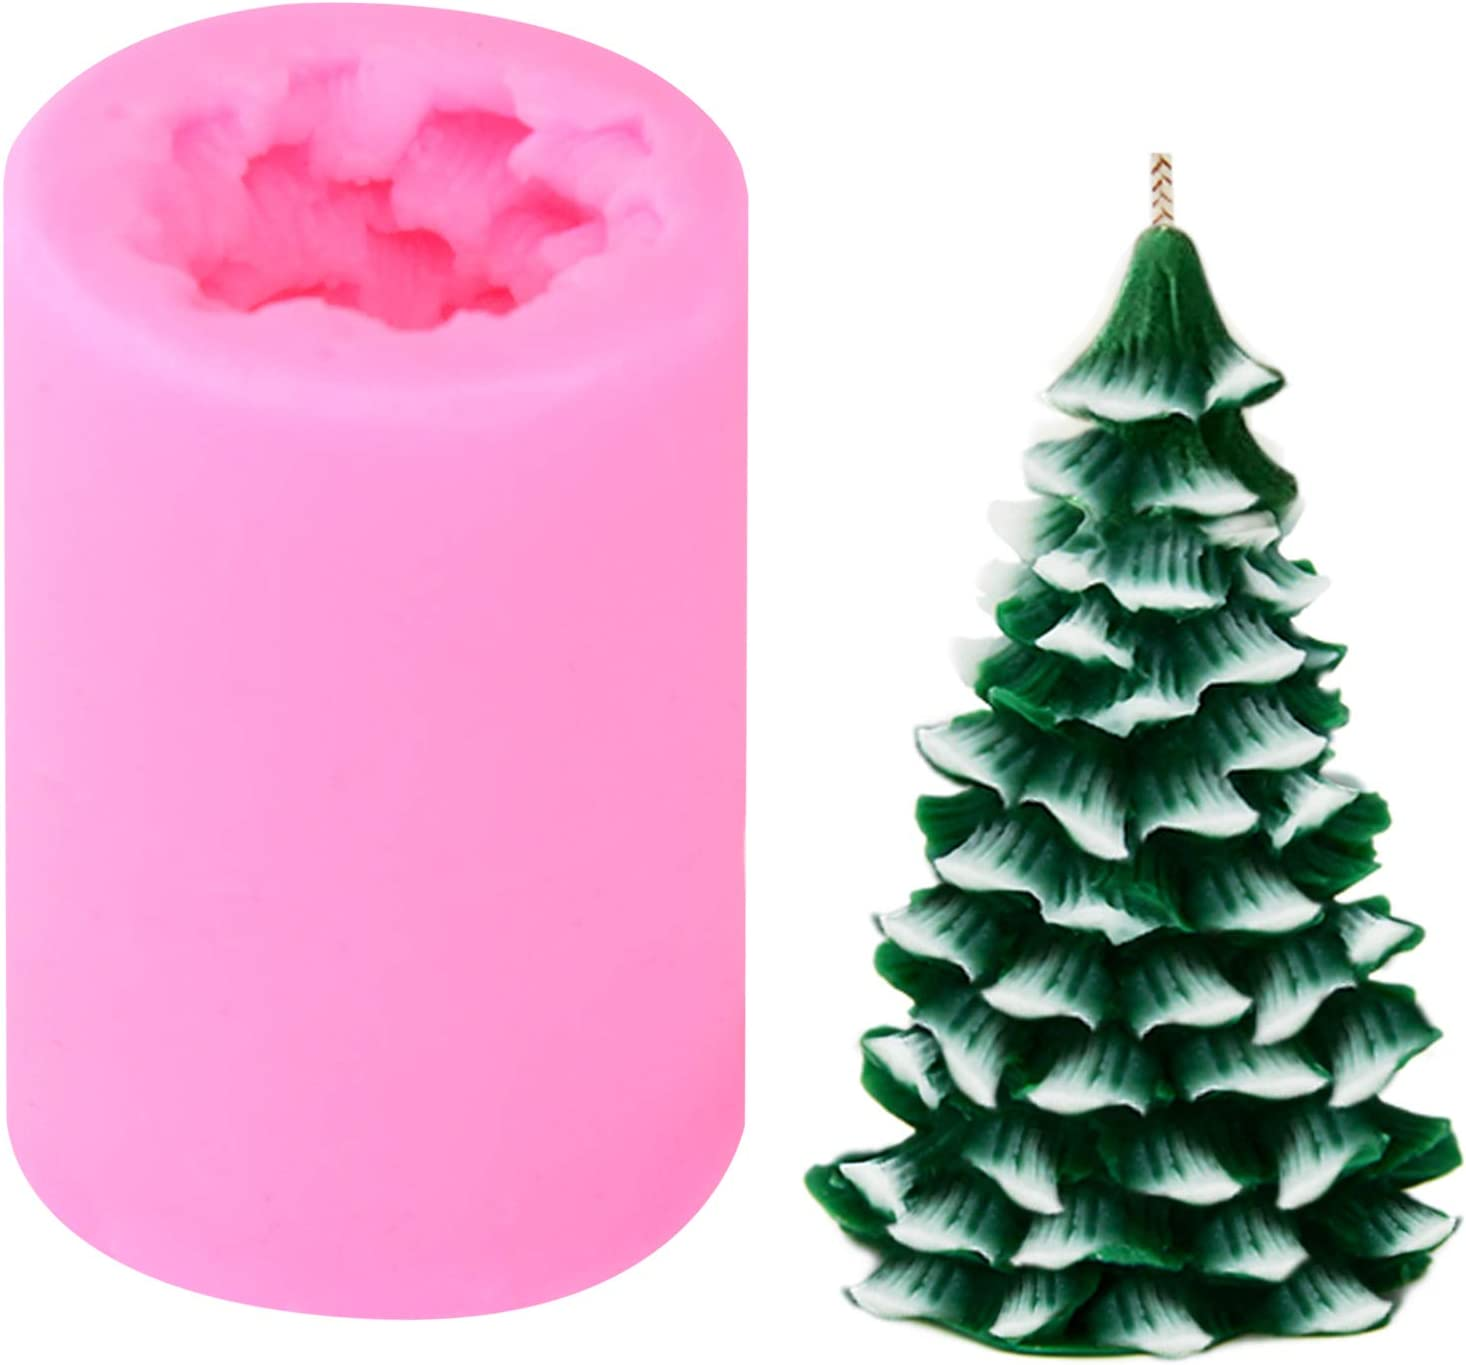 3D Christmas Tree Silicone Candle Mold for Candle Making Christmas Tree Mold Xmas Pine Tree Silicone Soap Molds DIY Baking Molds Soap Molds for Christmas Decoration Supplies